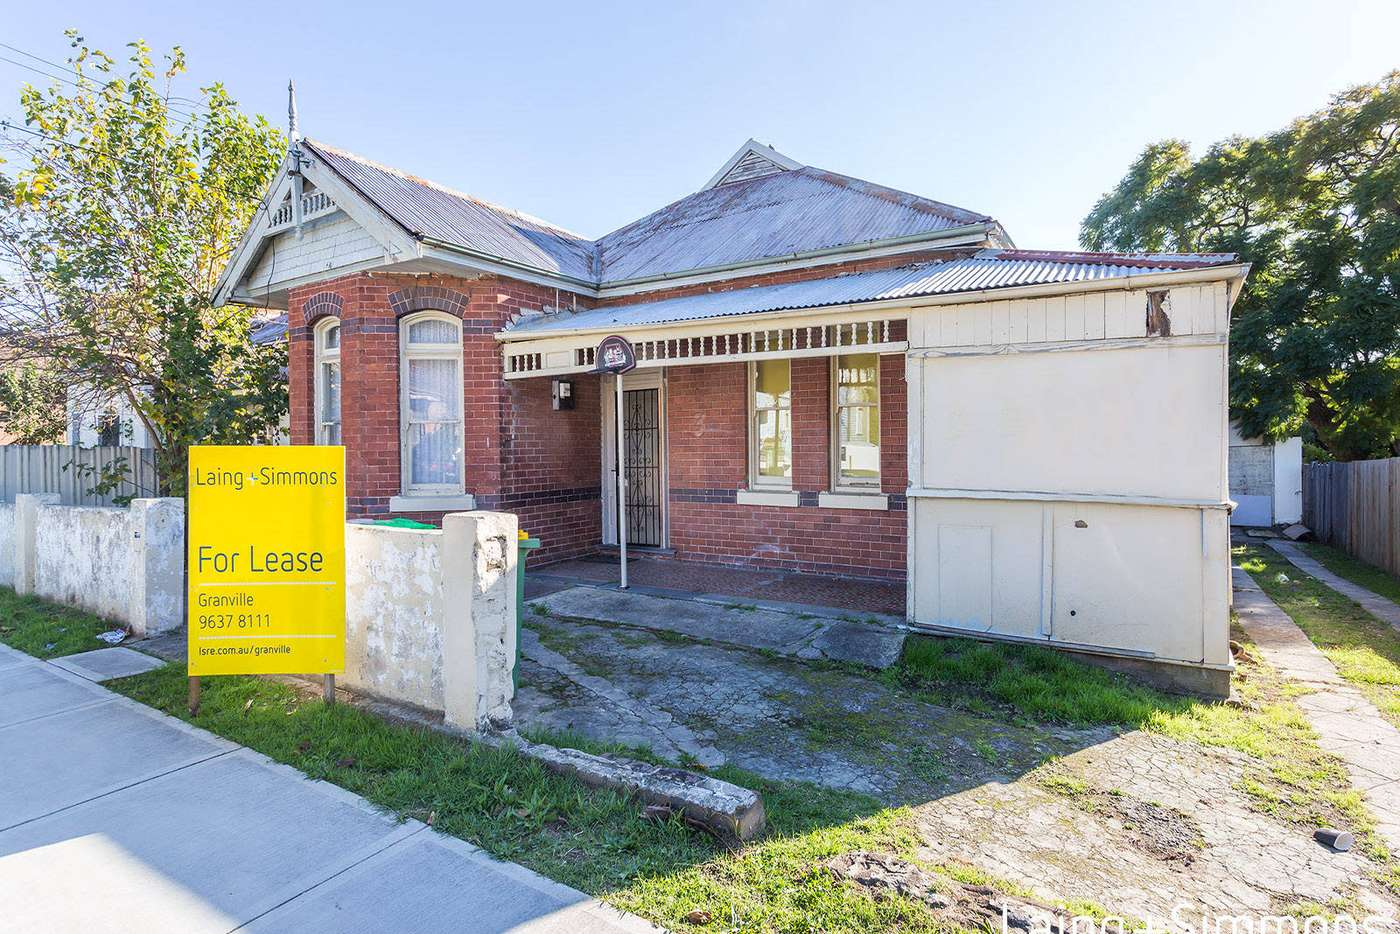 Main view of Homely house listing, 3 Daniel Street, Granville NSW 2142